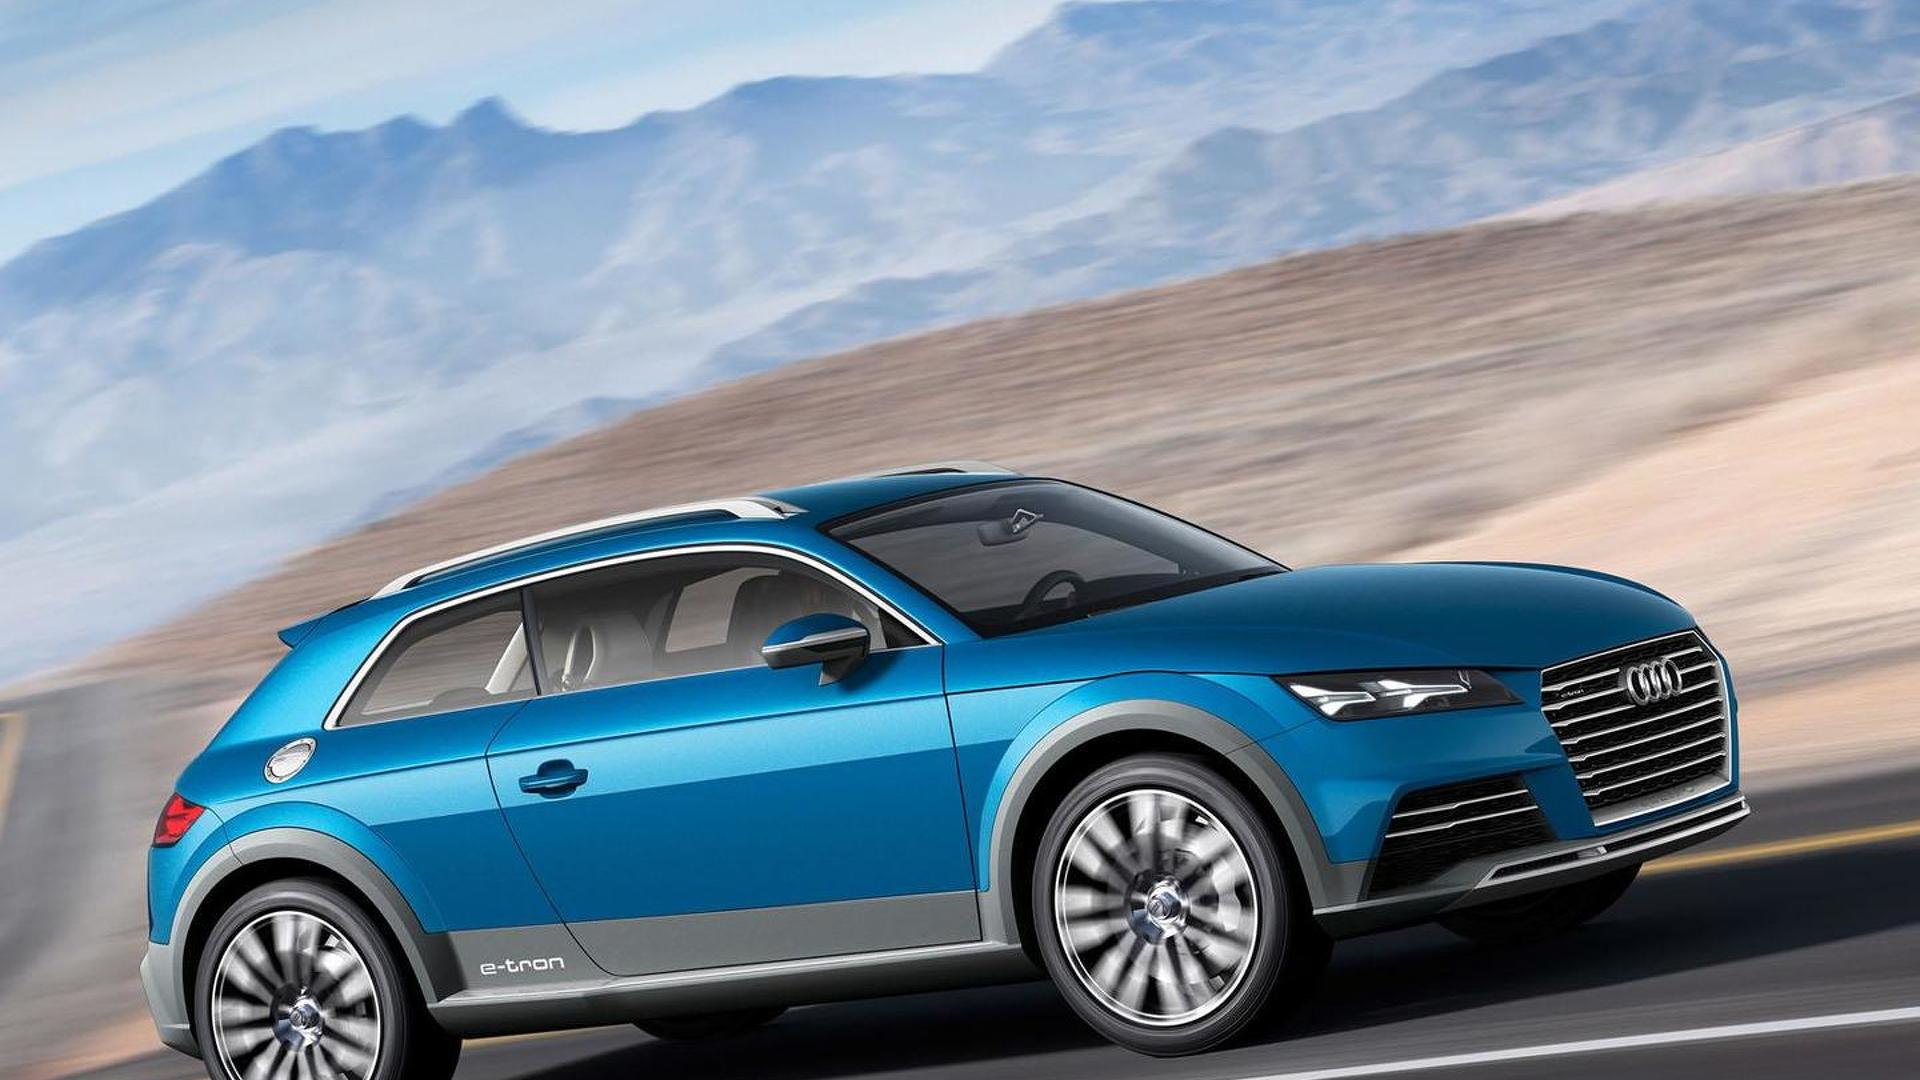 Audi crossover coupe concept leaks out early, likely previews the 2015 TT